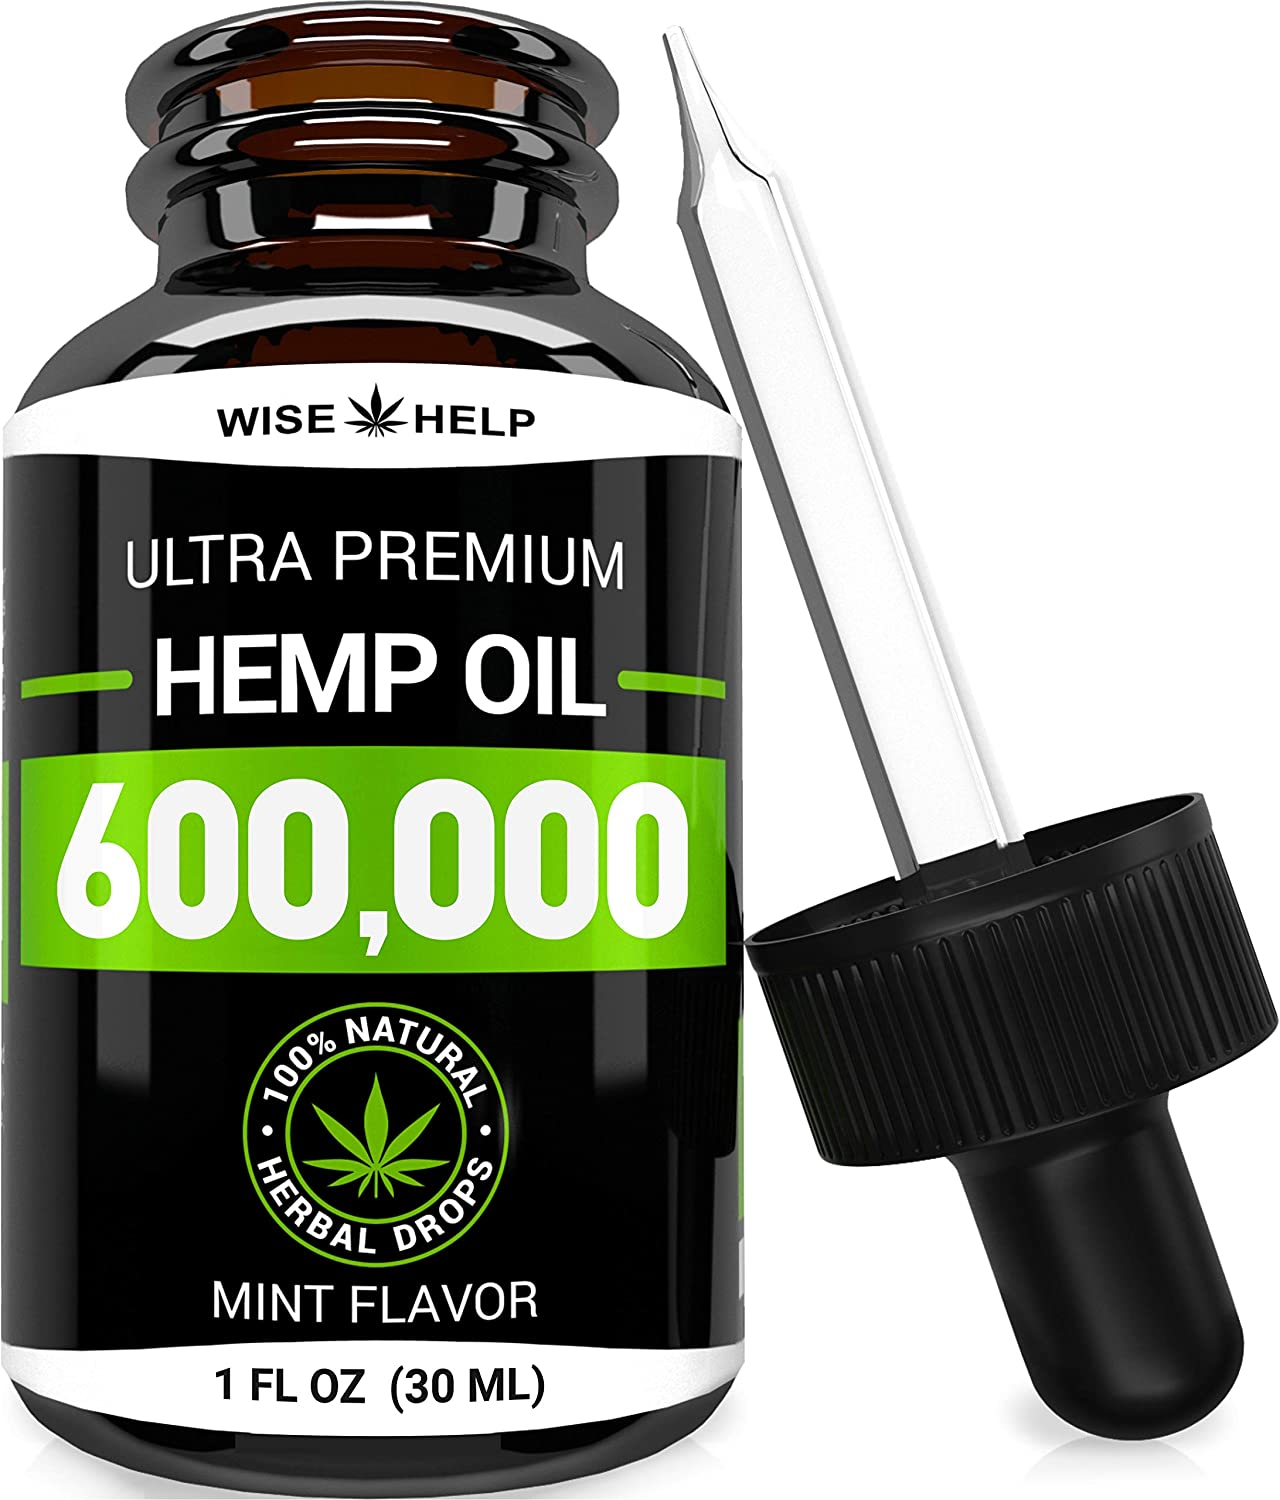 Hemp Oil Drops 600,000 - Made in USA - Anxiety & Stress Relief - Optimum Absorption & BIOAvailability - Natural Supplement for Sleep, Immune & Mood Support - Omega 3-6-9 - Mint Flavor